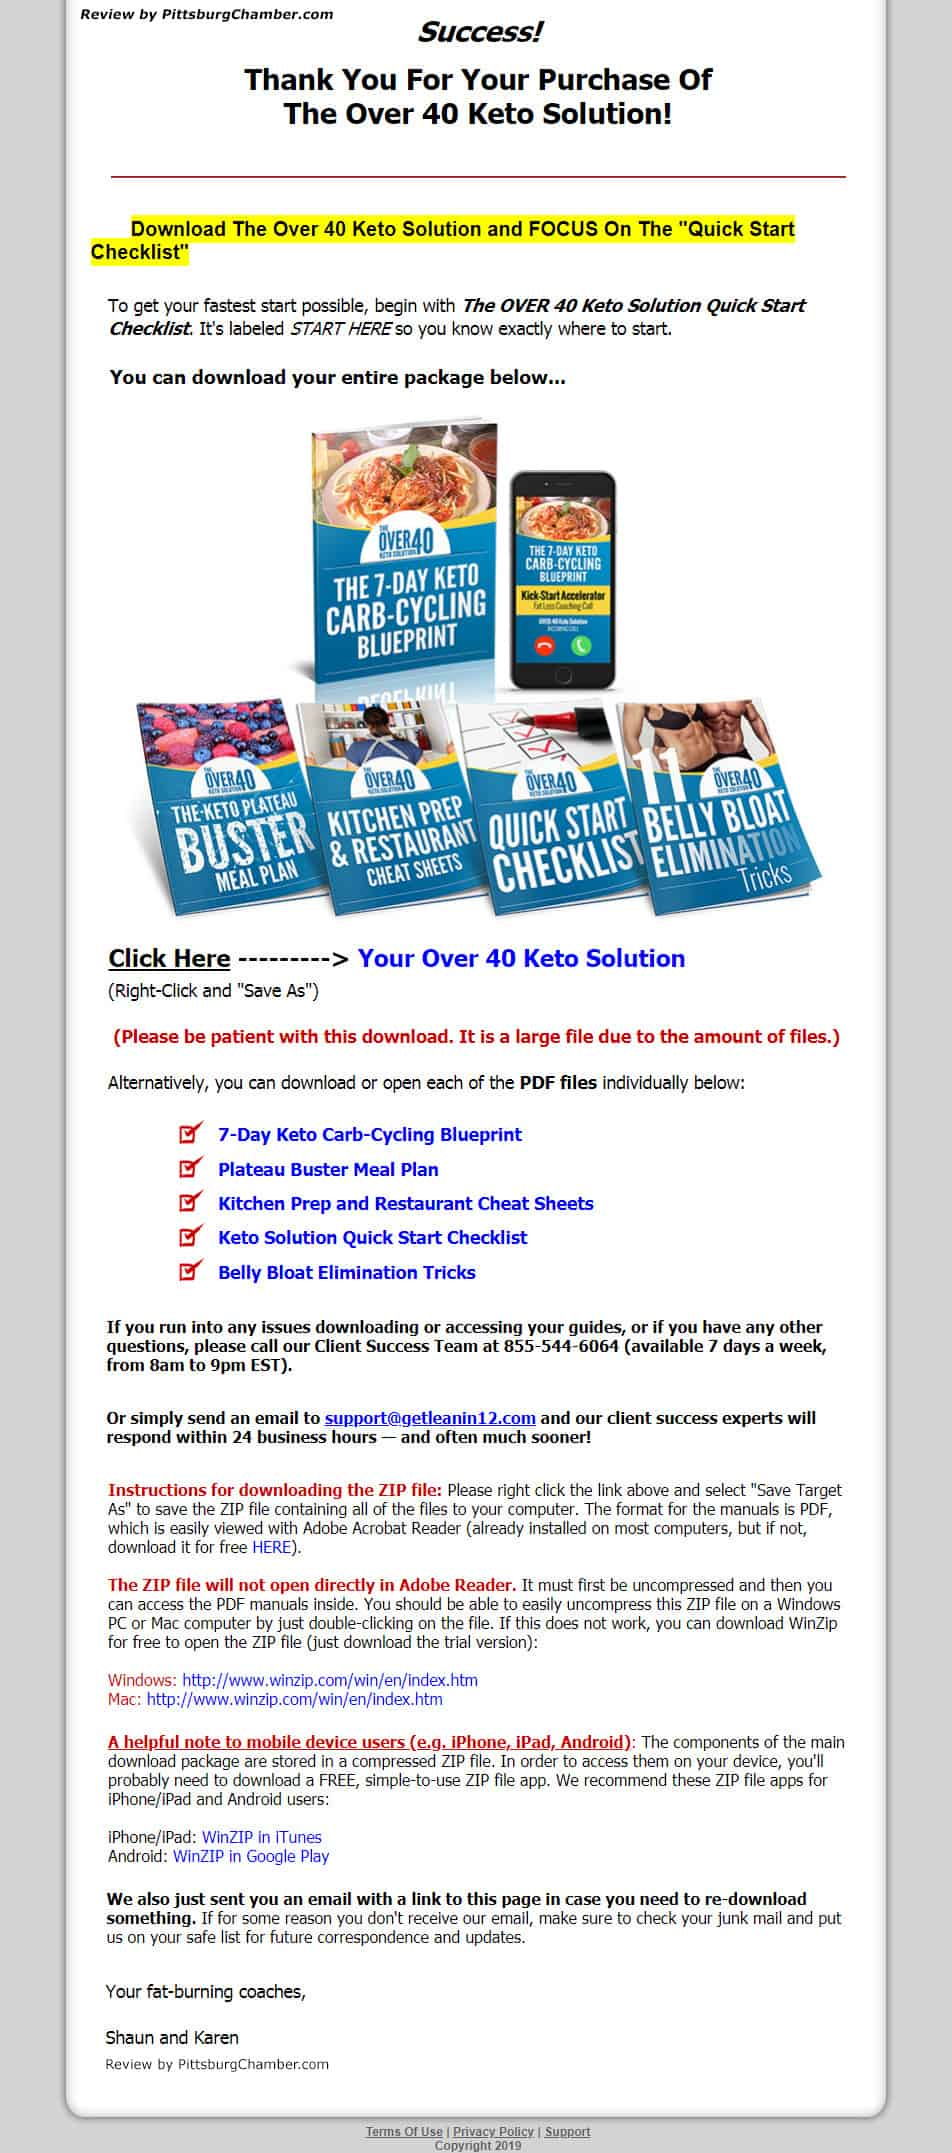 Over 40 Keto Solution Download Page